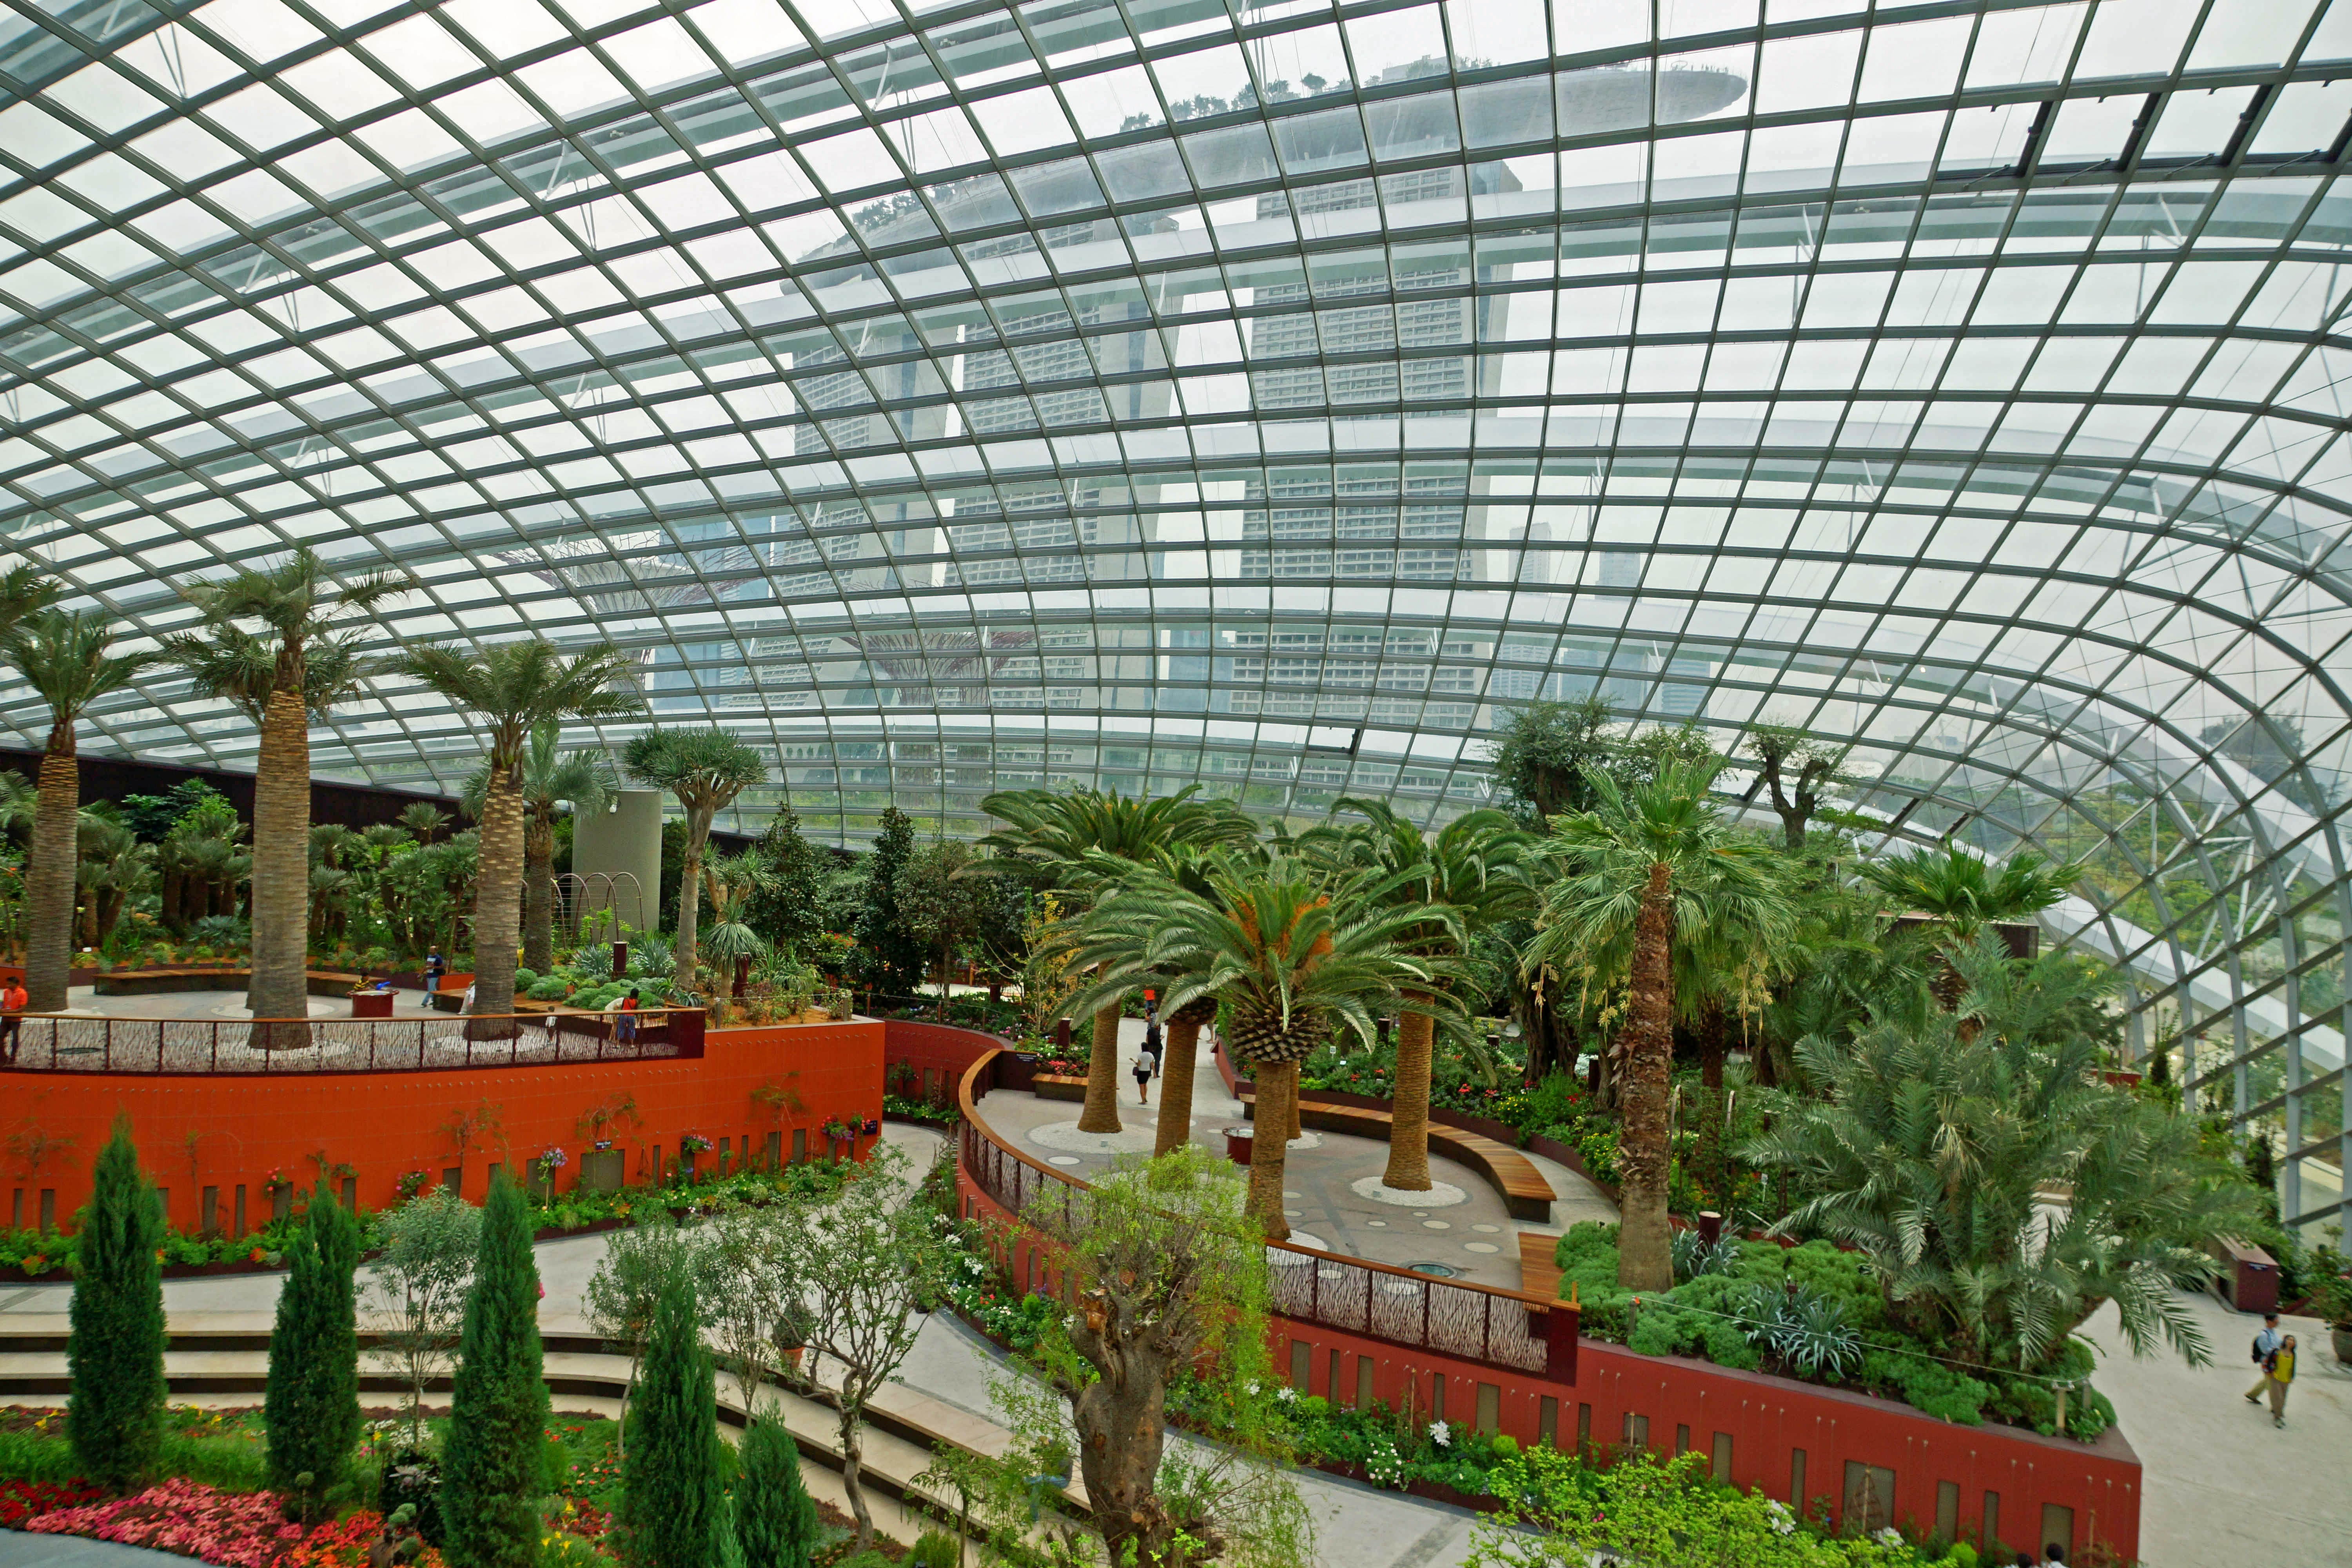 1465885864_flower_dome__gardens_by_the_bay__singapore_-_20120617.jpg